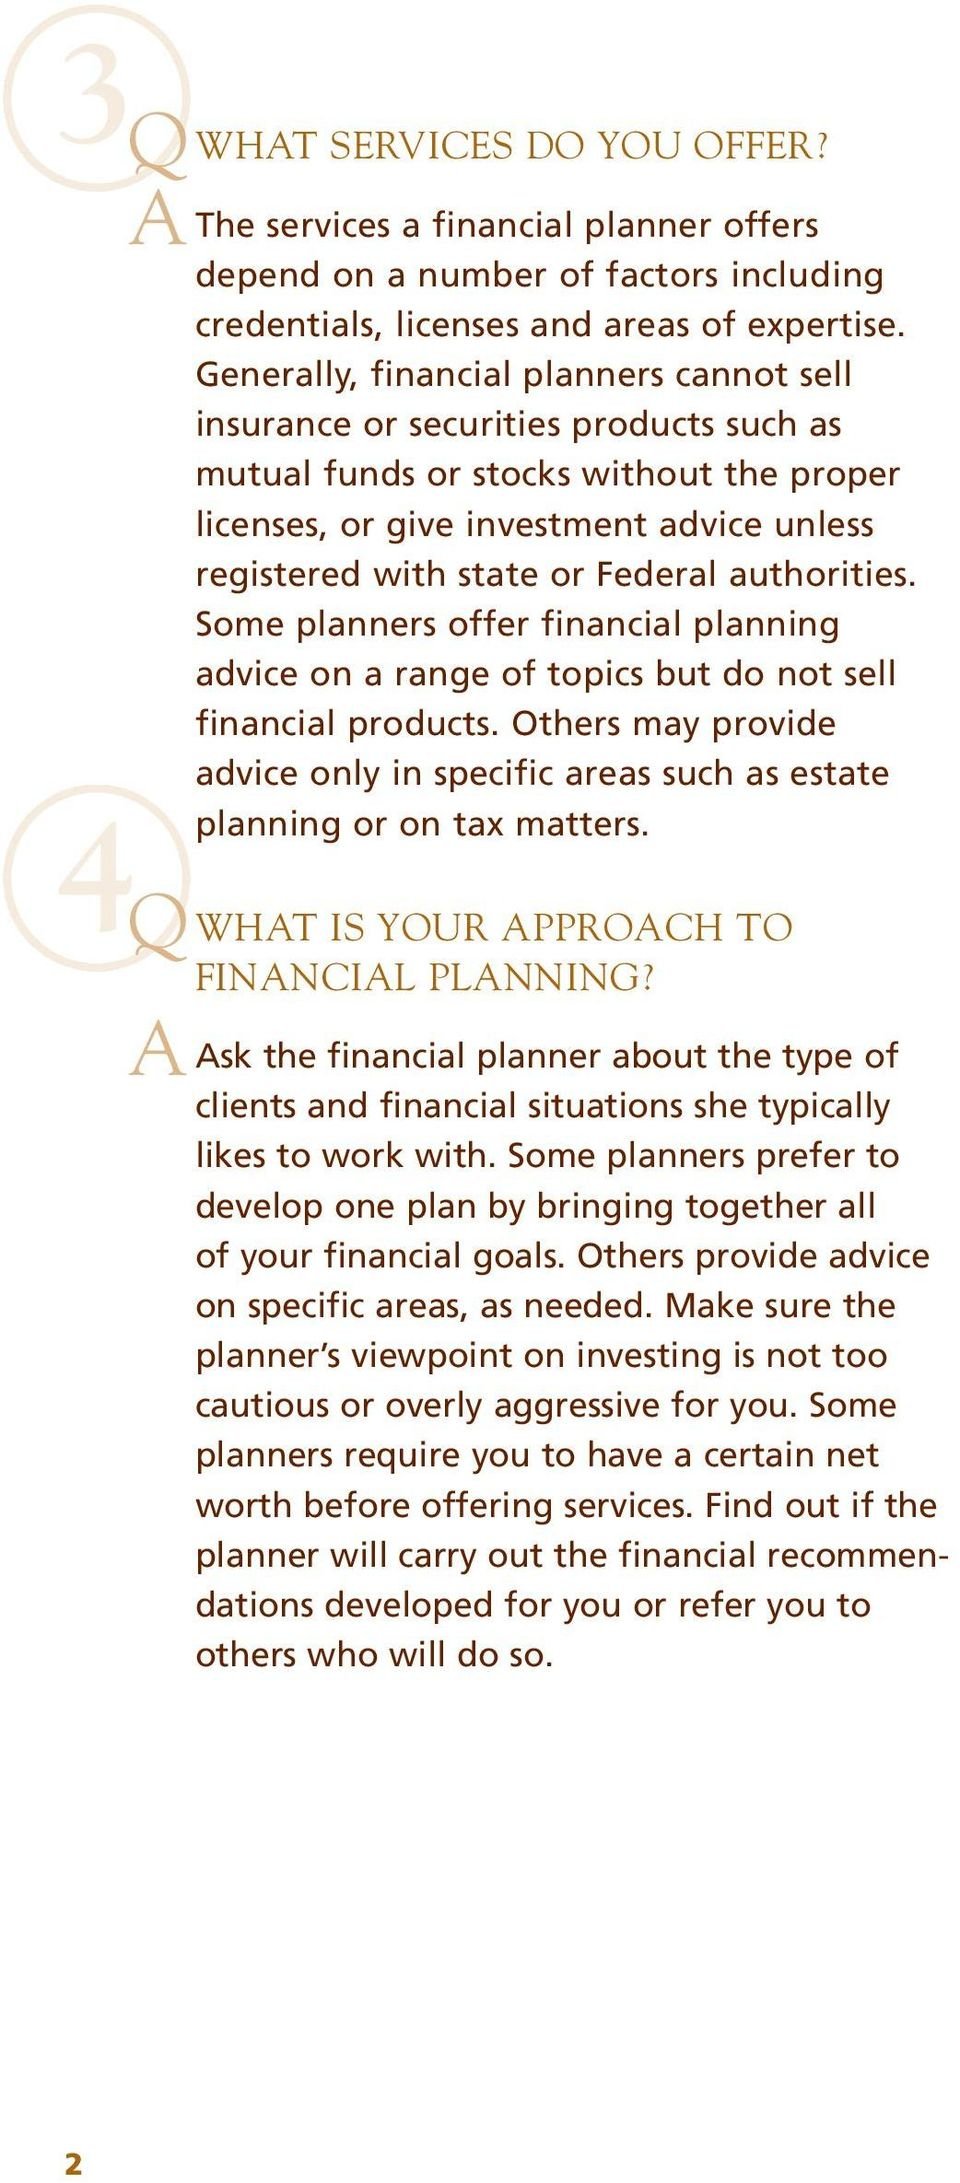 Federal authorities. Some planners offer financial planning advice on a range of topics but do not sell financial products.